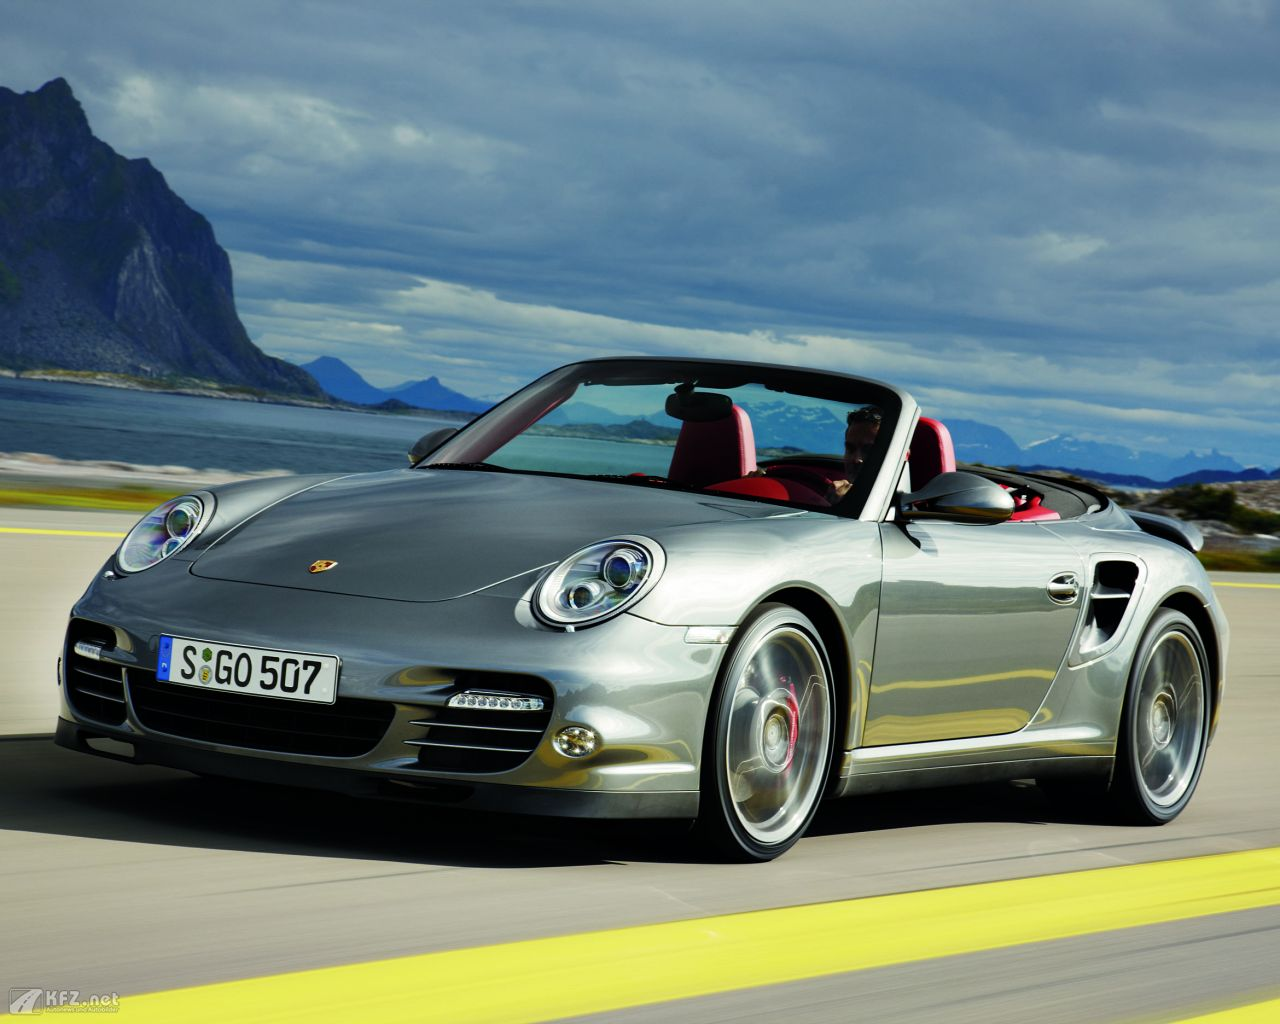 porsche-911-turbo-coupe-1280x1024-1